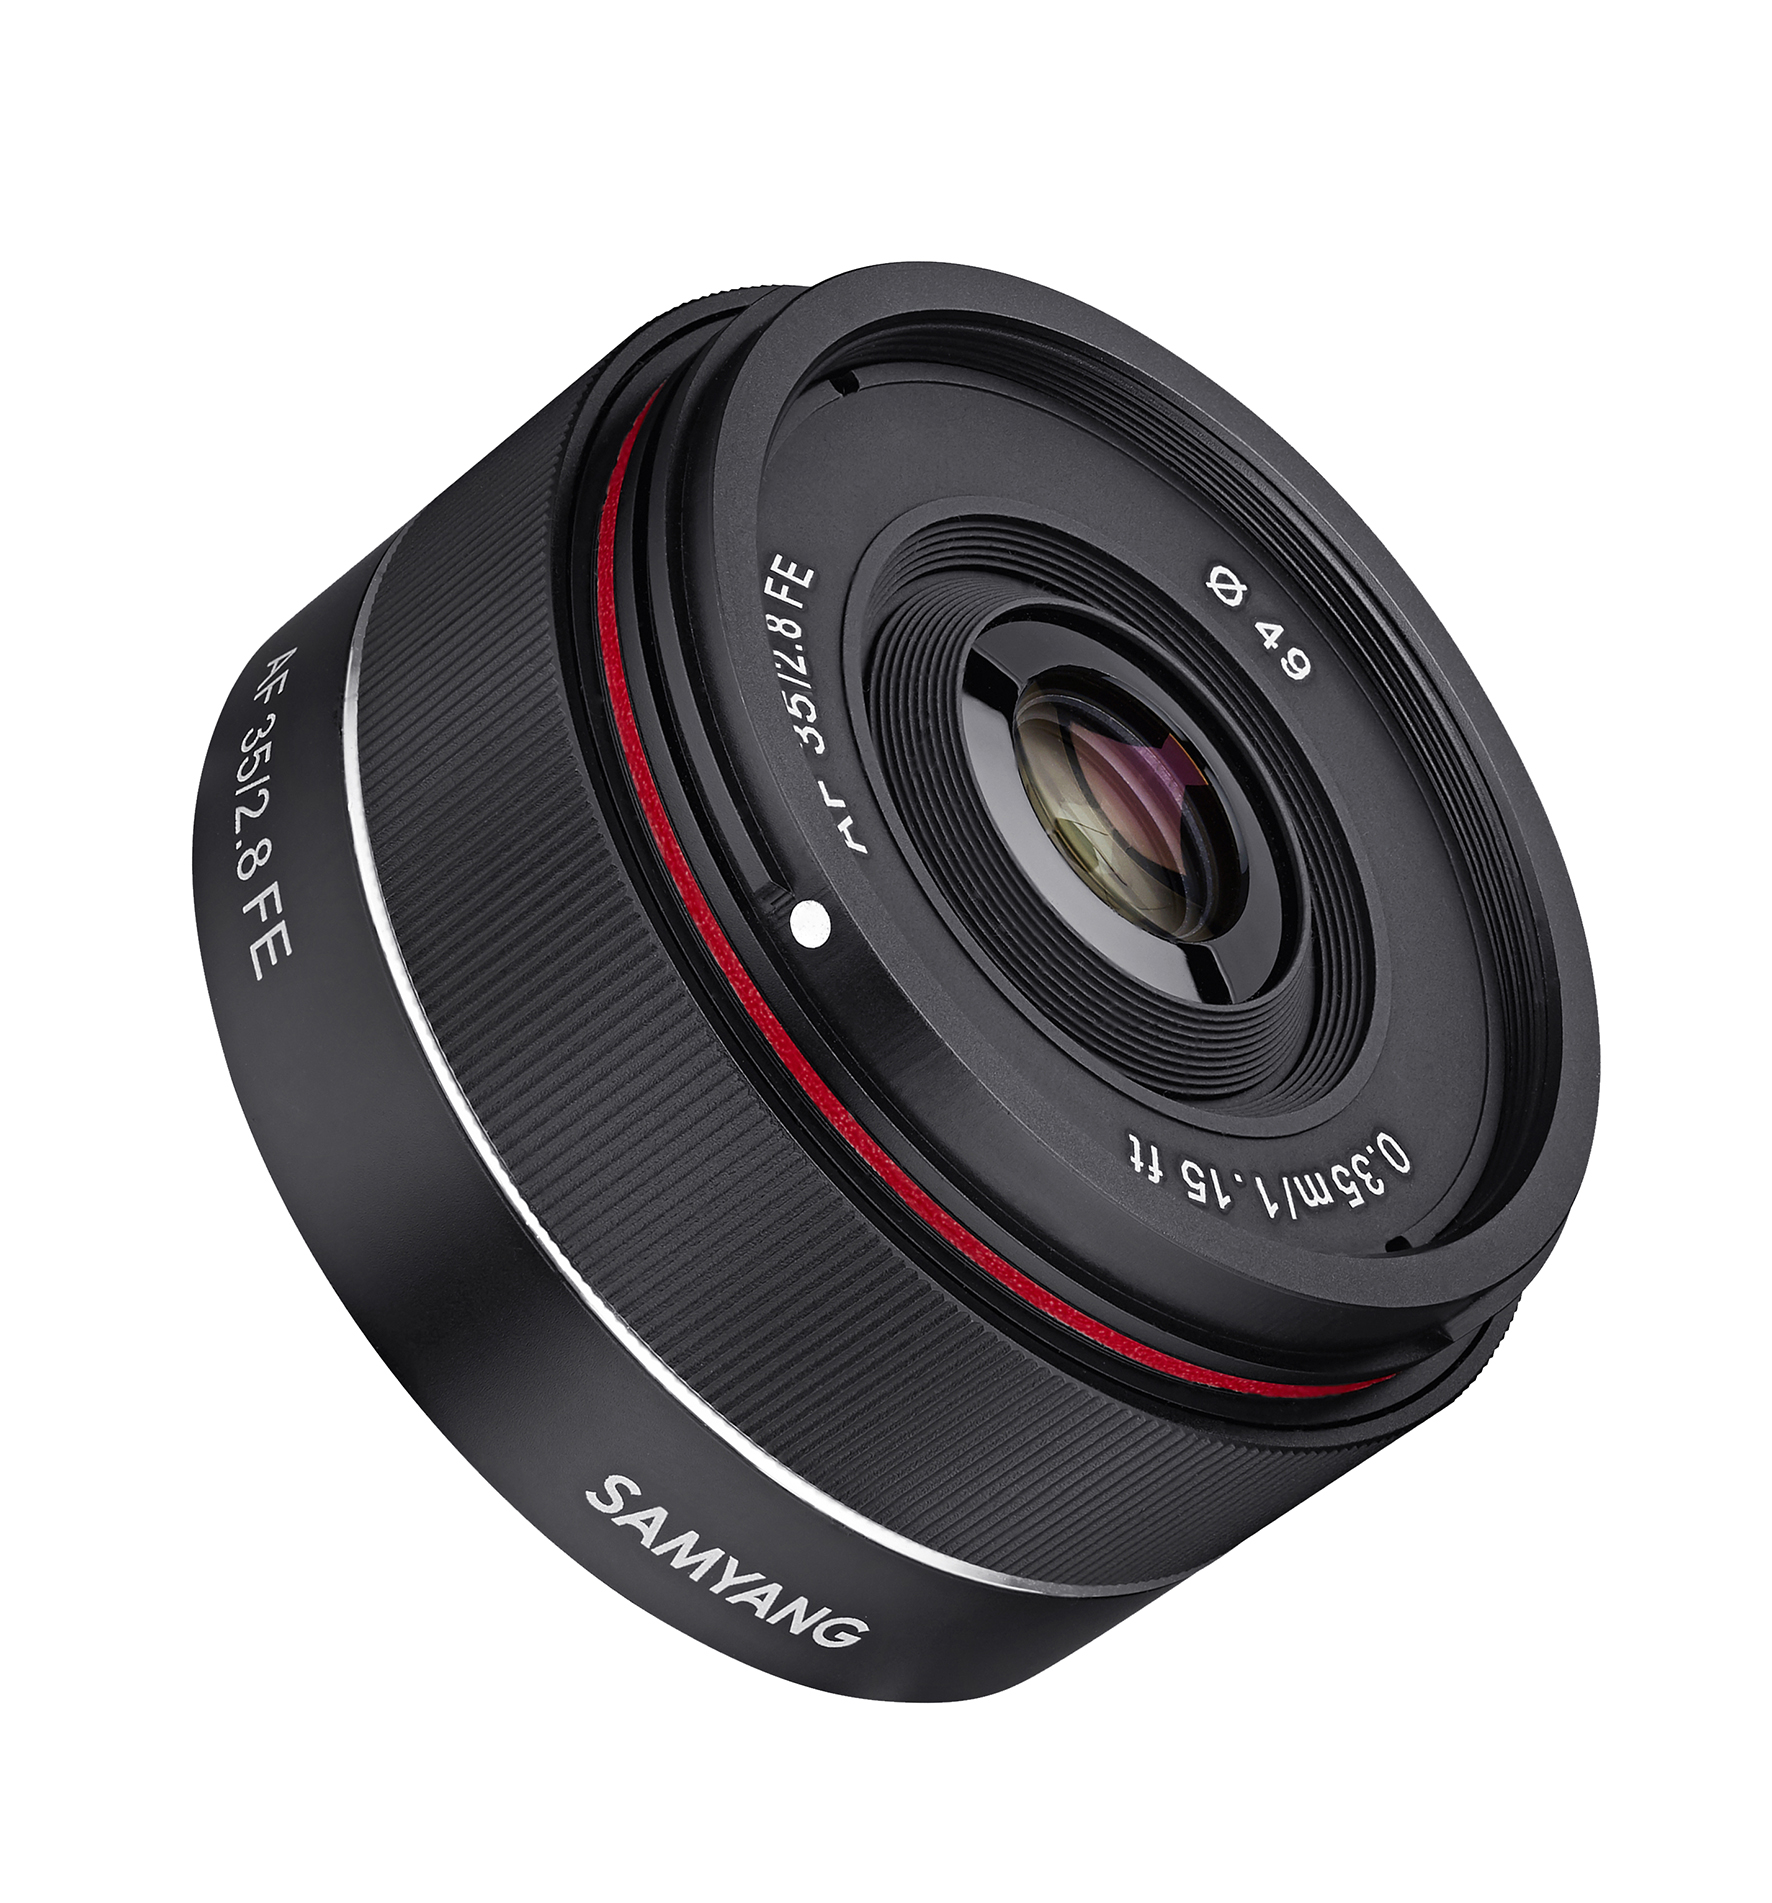 Samyang 35mm f/2.8 FE lens with autofocus launched and it\'s a ...